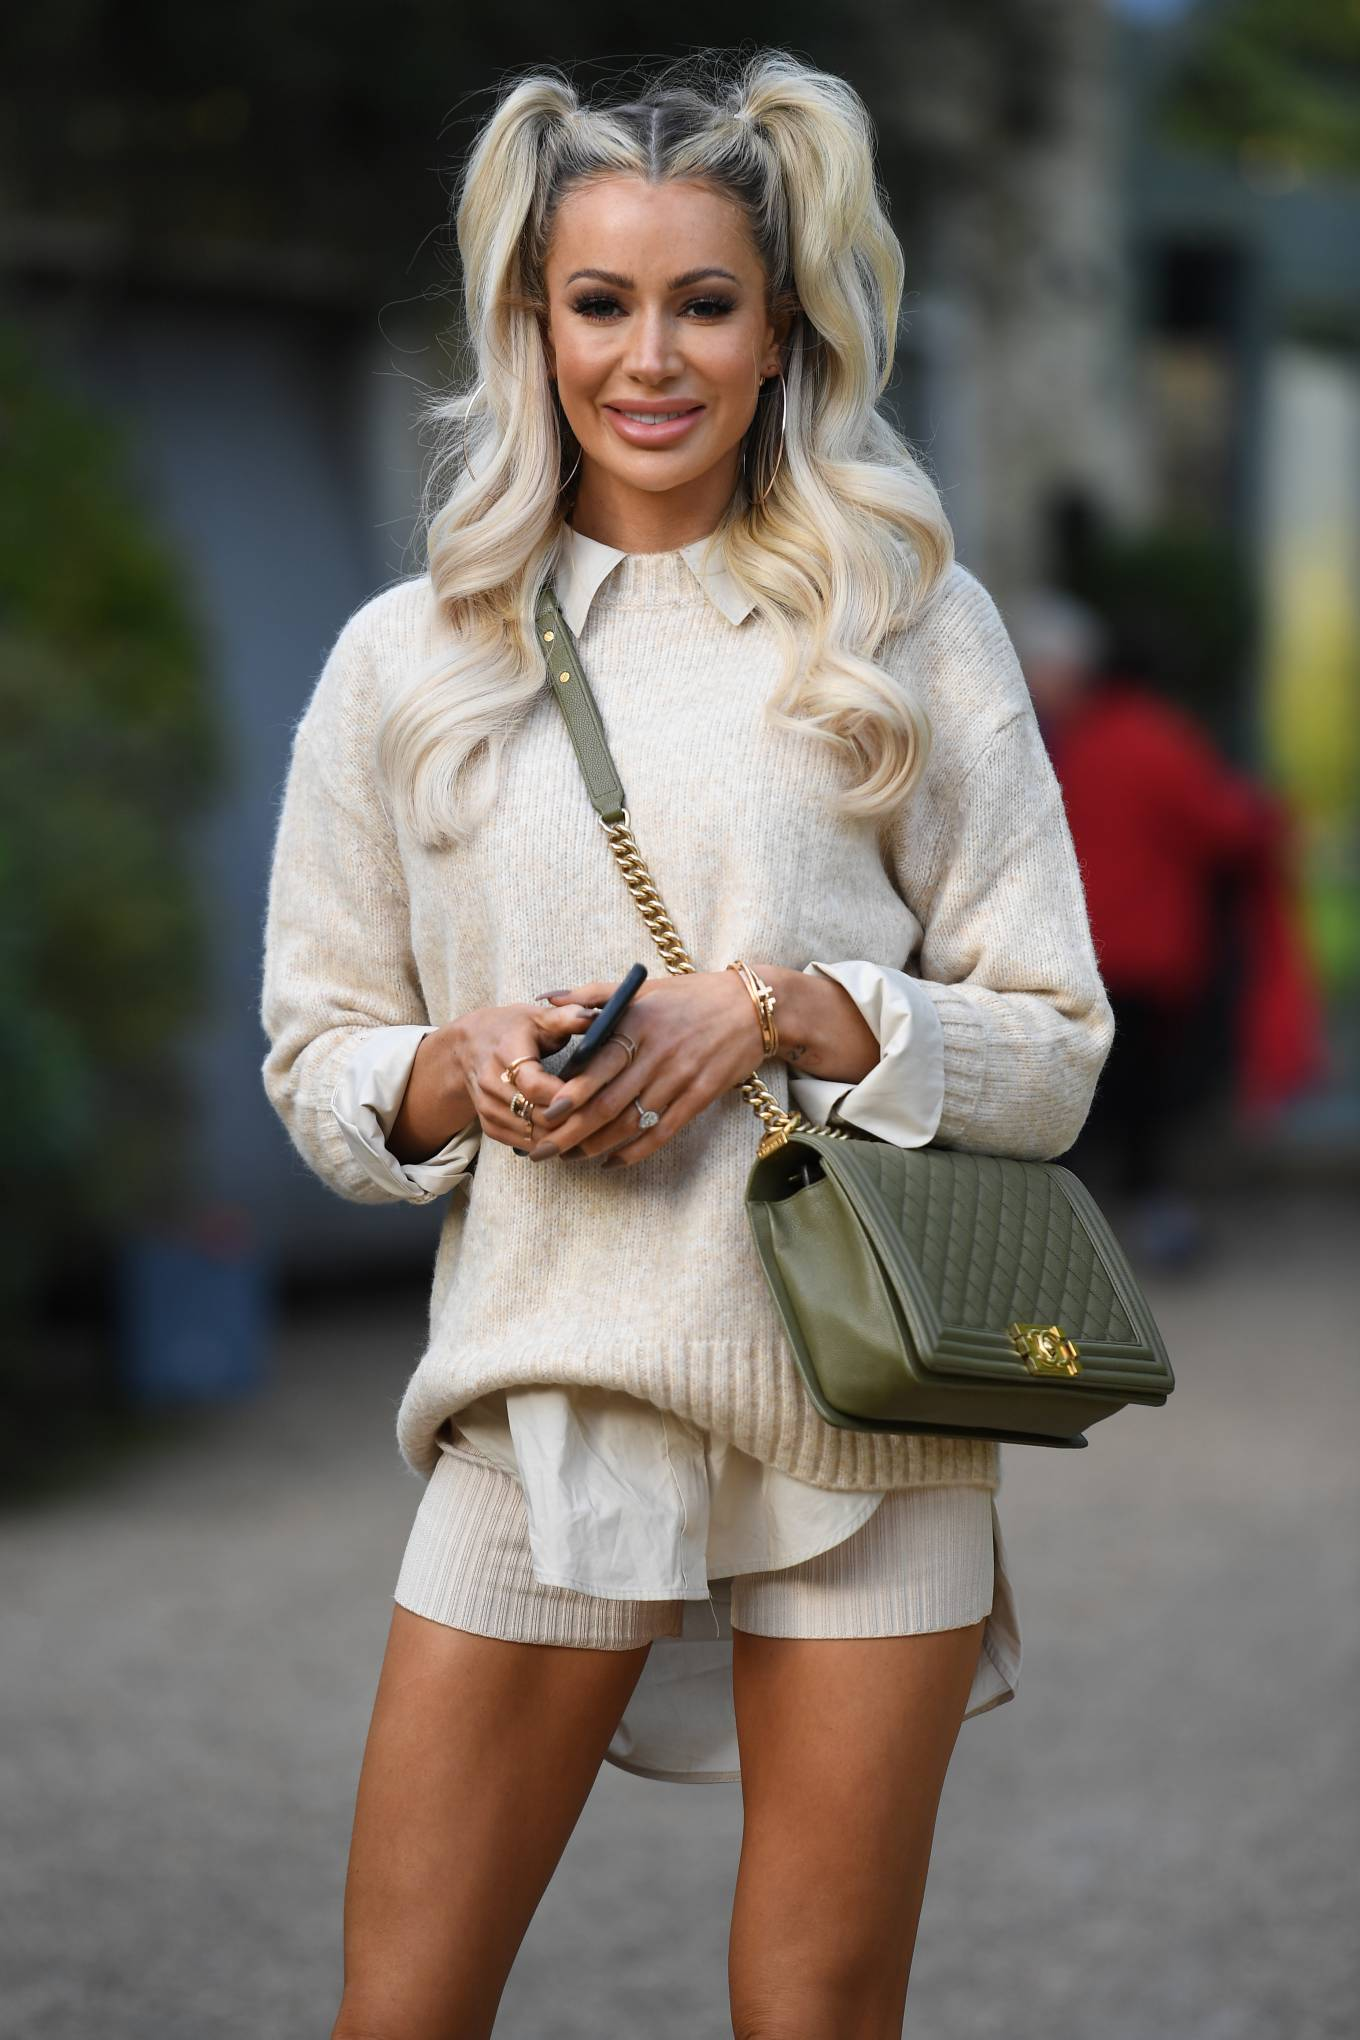 Olivia Attwood 2020 : Olivia Attwood – The Only Way is Essex TV Show filming in Essex-05